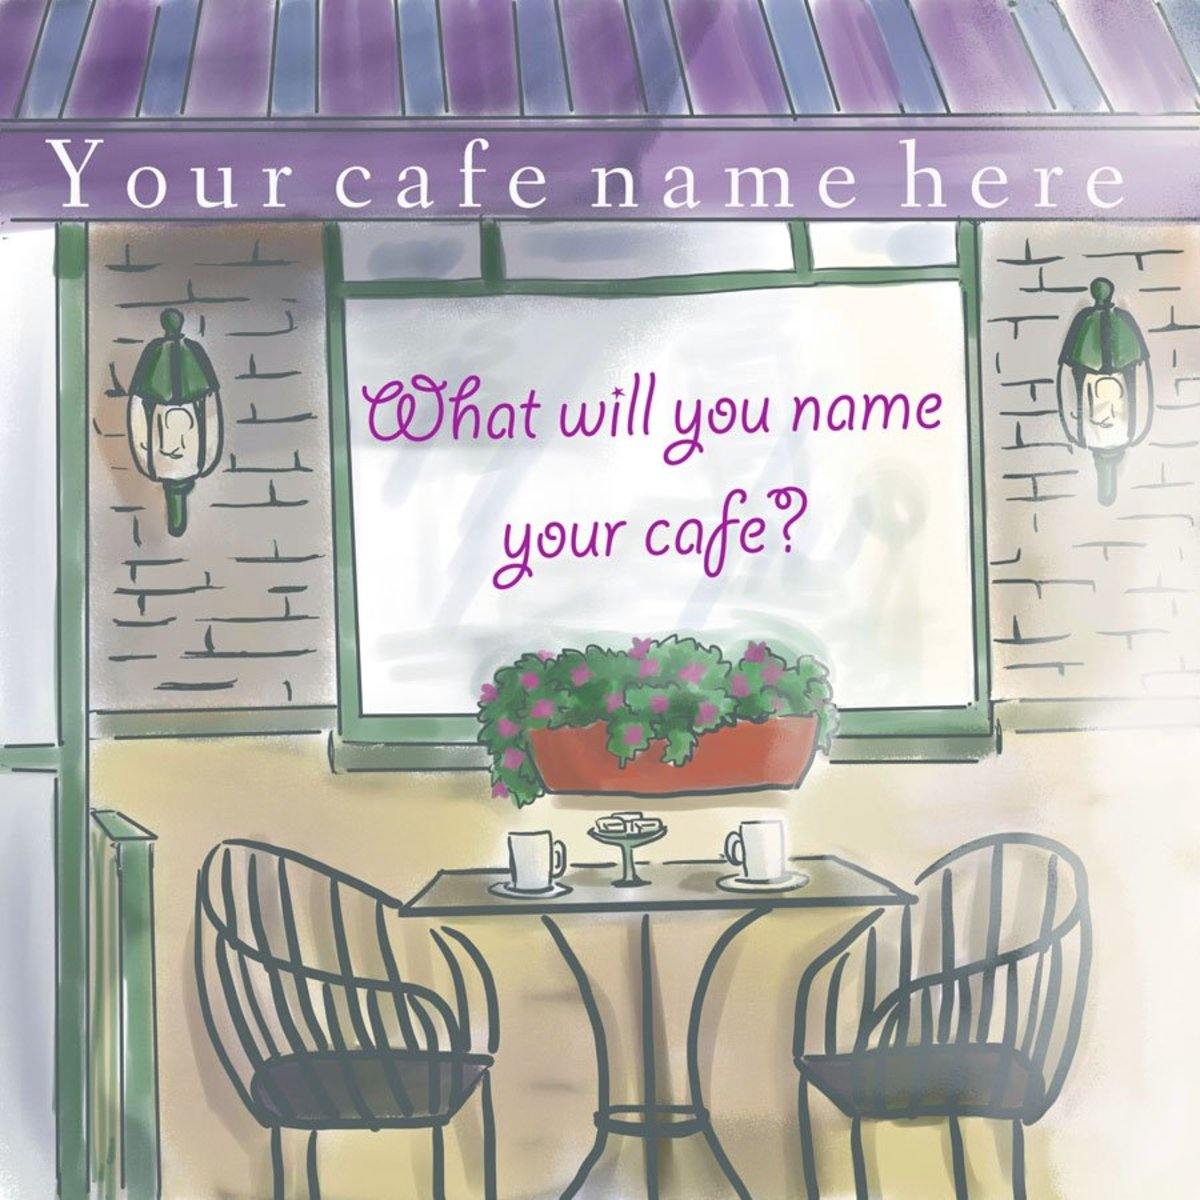 What to name your cafe?